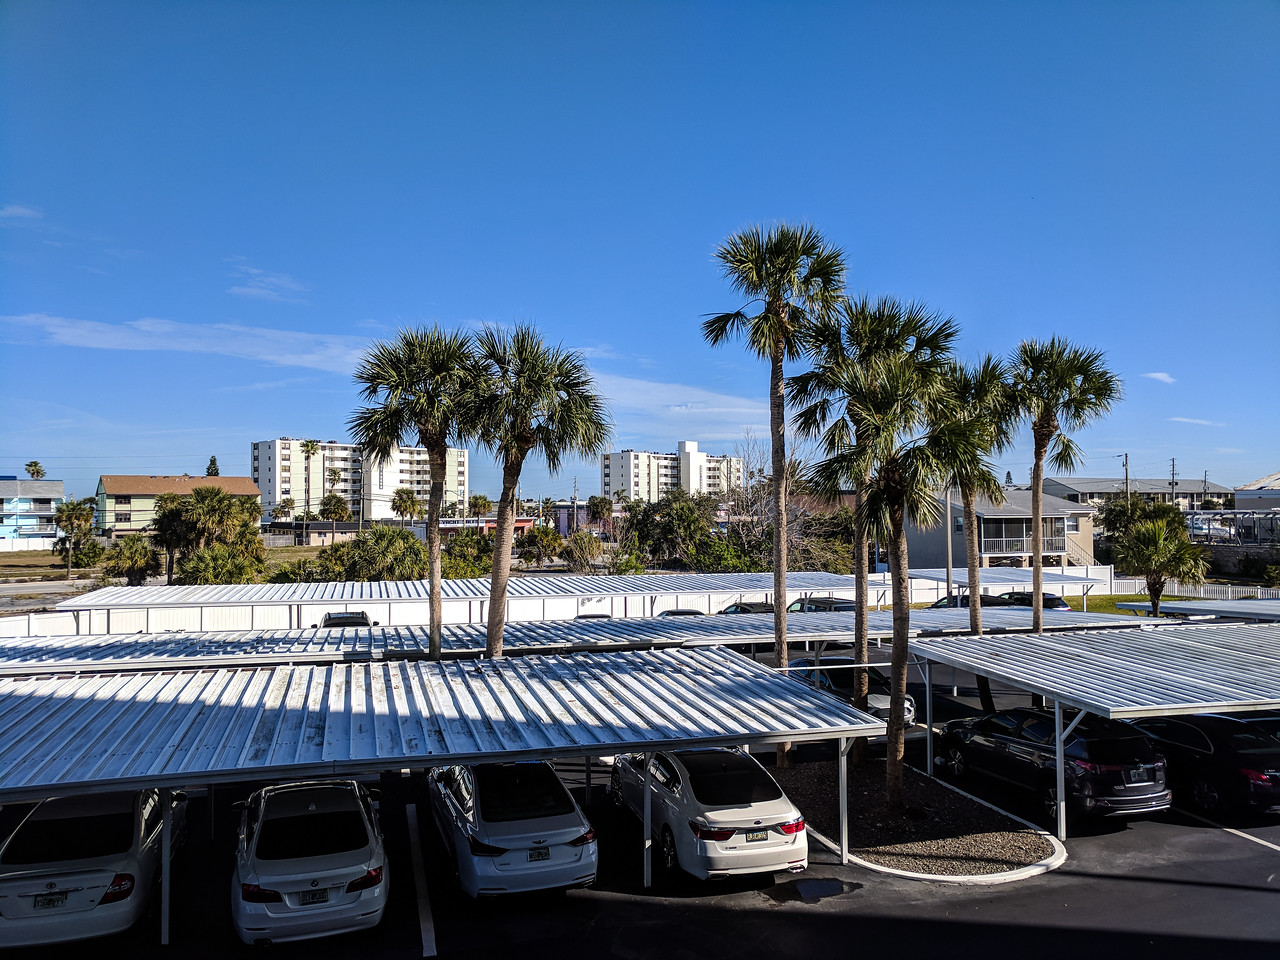 Florida Vacation - Tampa / Ft. Lauderdale 2-1-2018